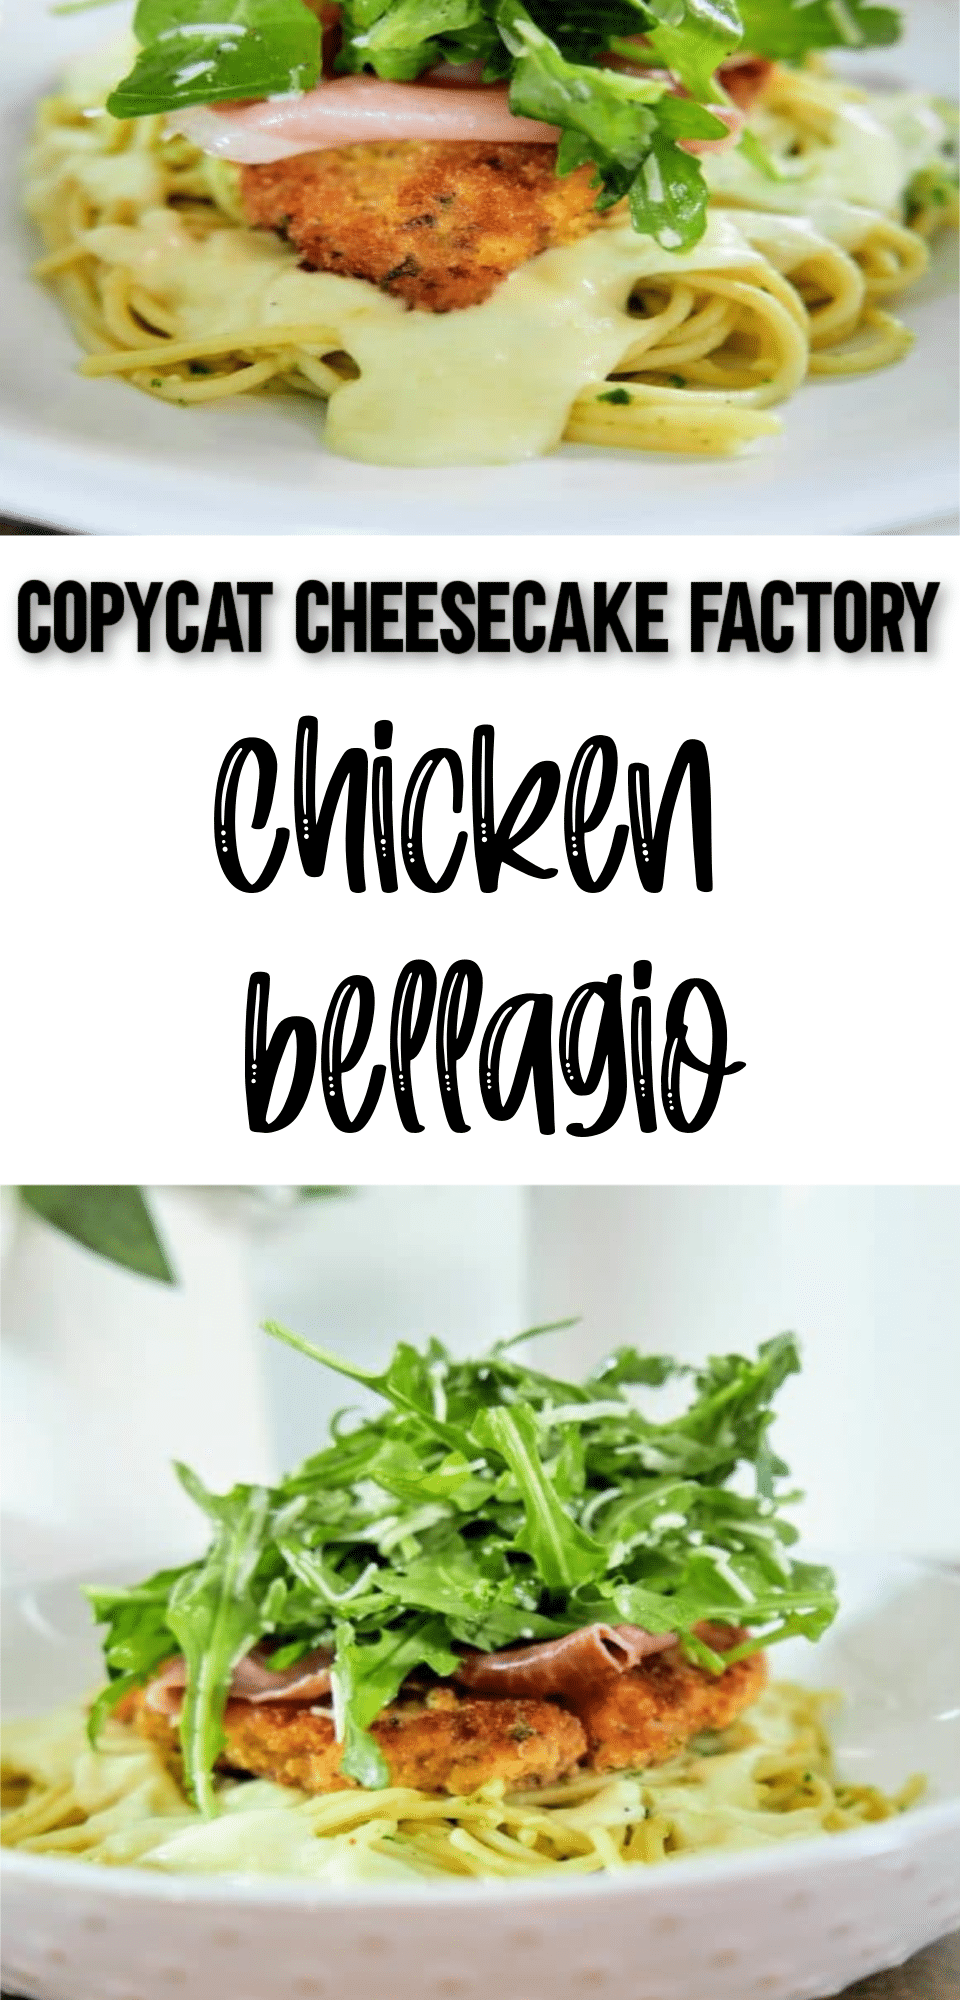 Chicken Bellagio from the Cheesecake Factory is so delicious and now you can make it at home! Our homemade copycat recipe is spot on and so easy to make. The flavors of the Chicken Bellagio are savory and tender that everyone will love. via @clarkscondensed